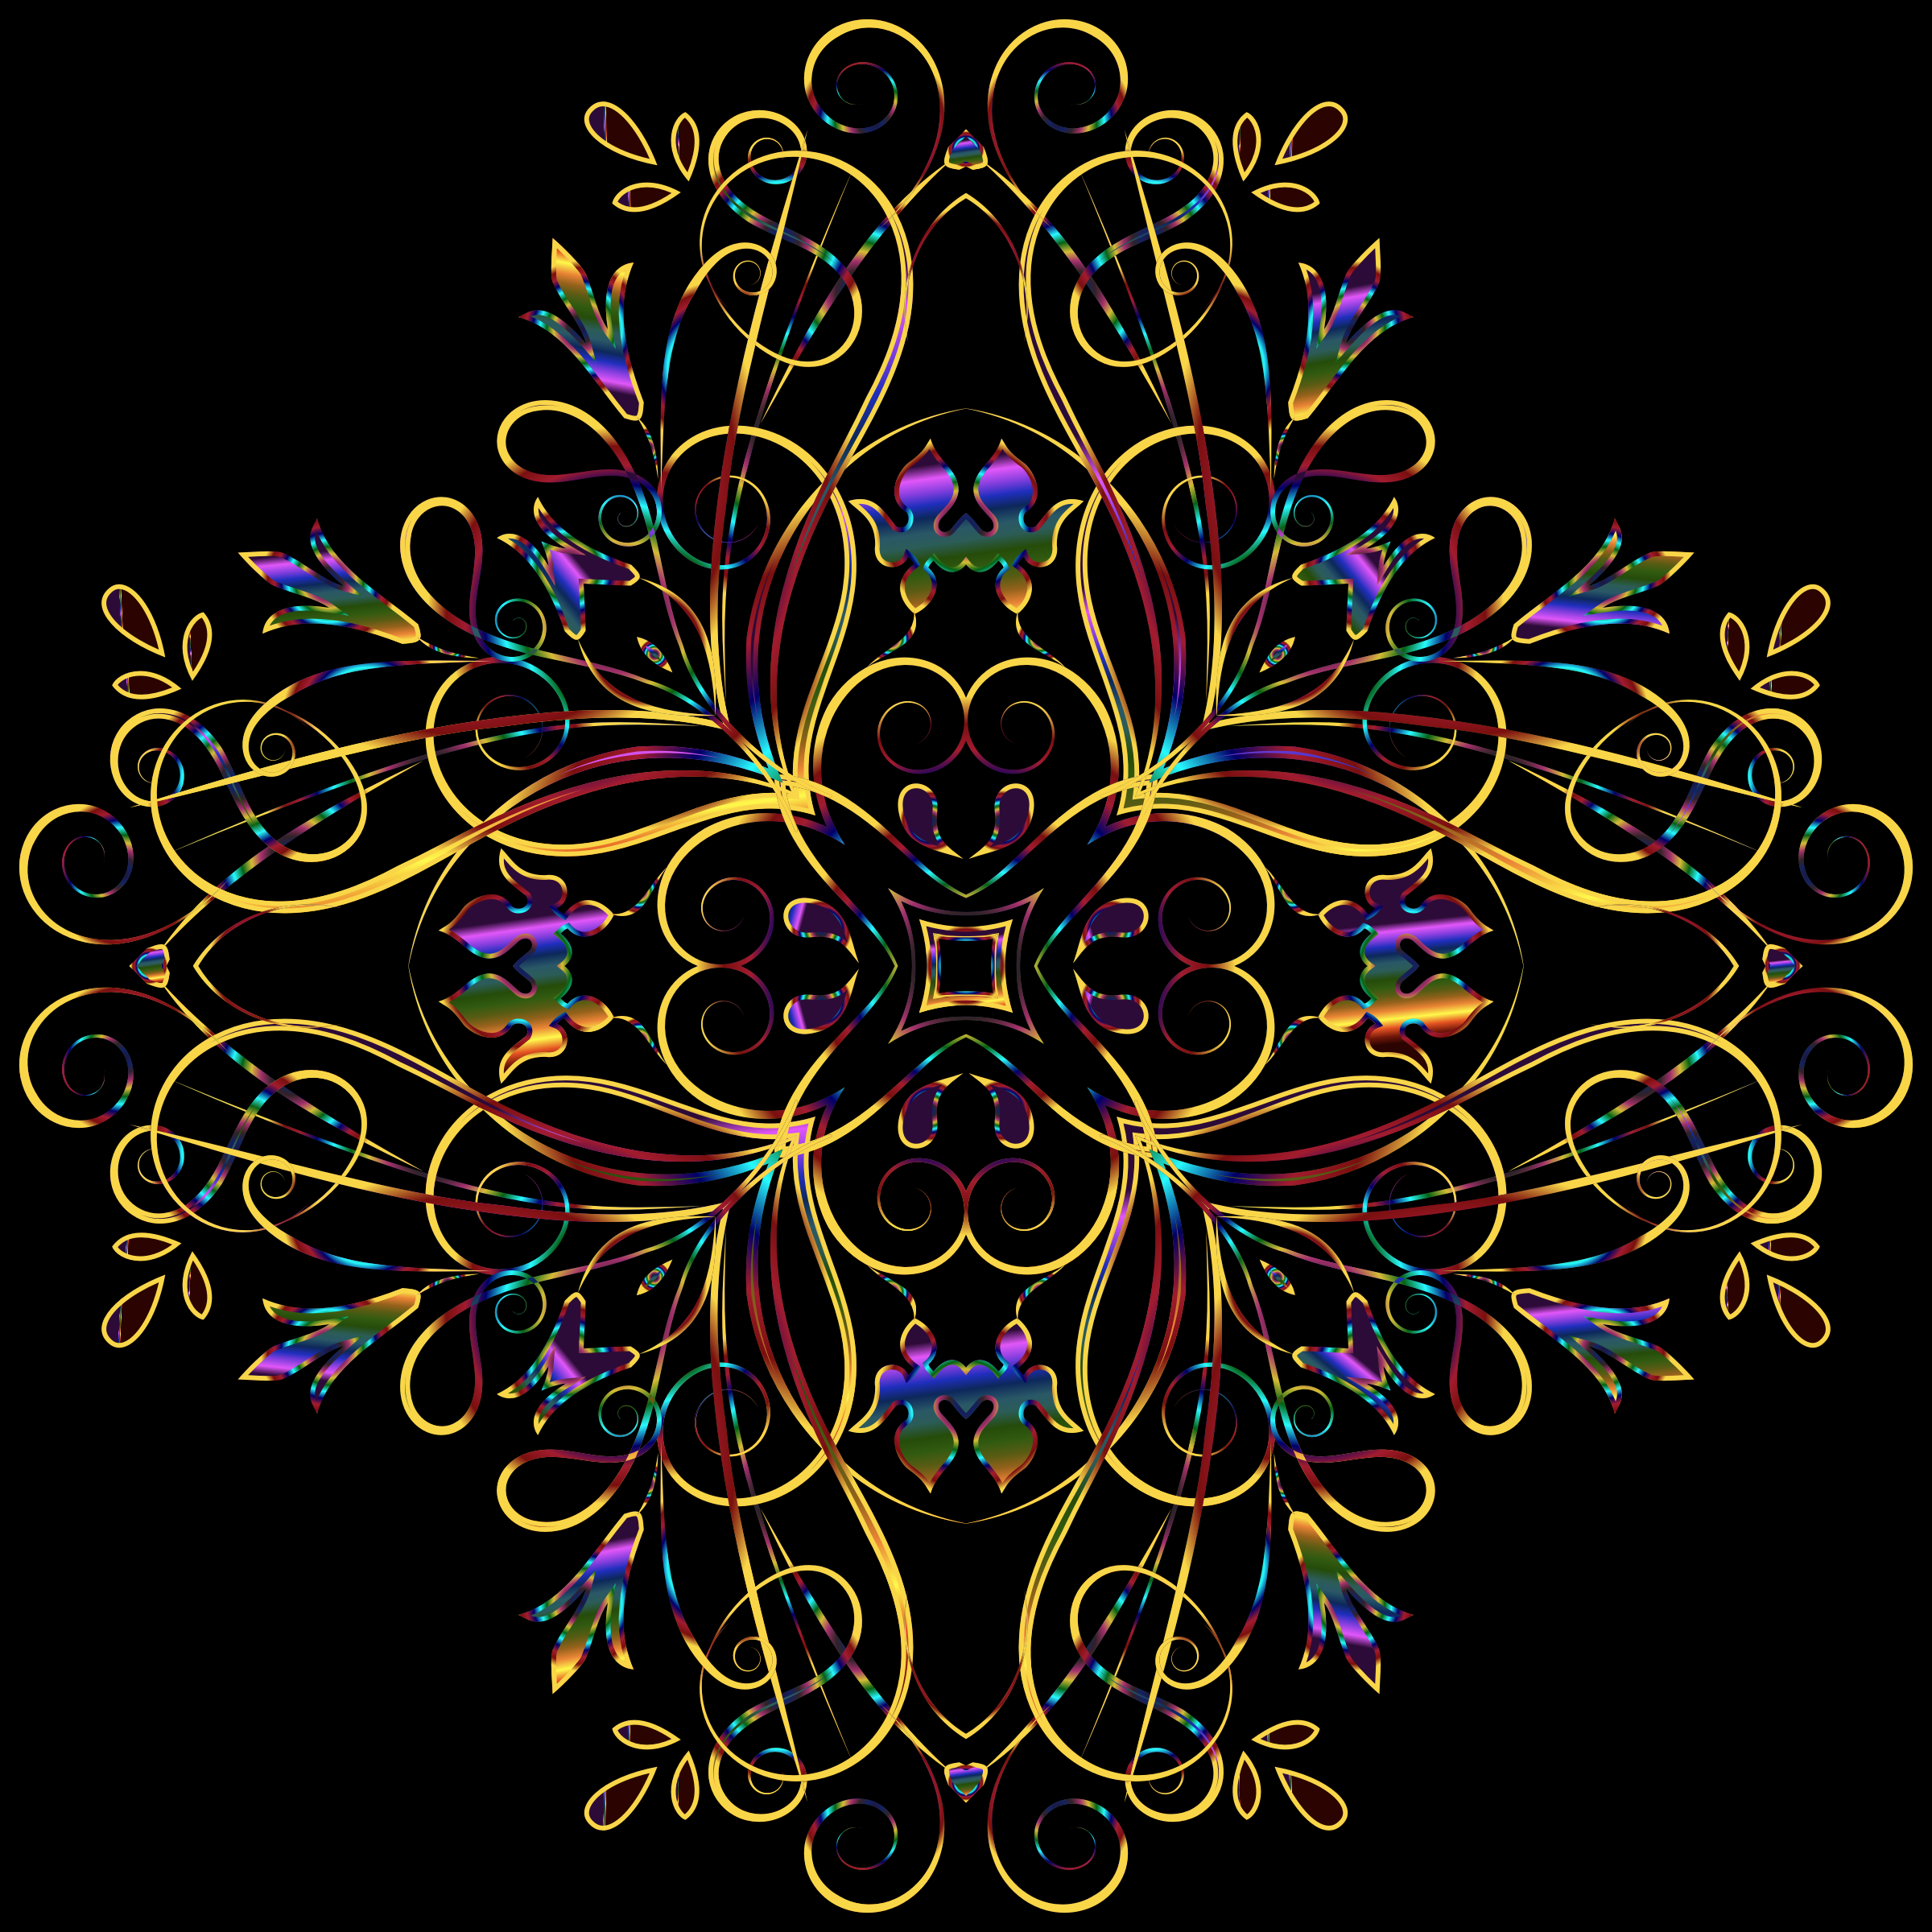 Flourishy Floral Design 11 Variation 2 by GDJ